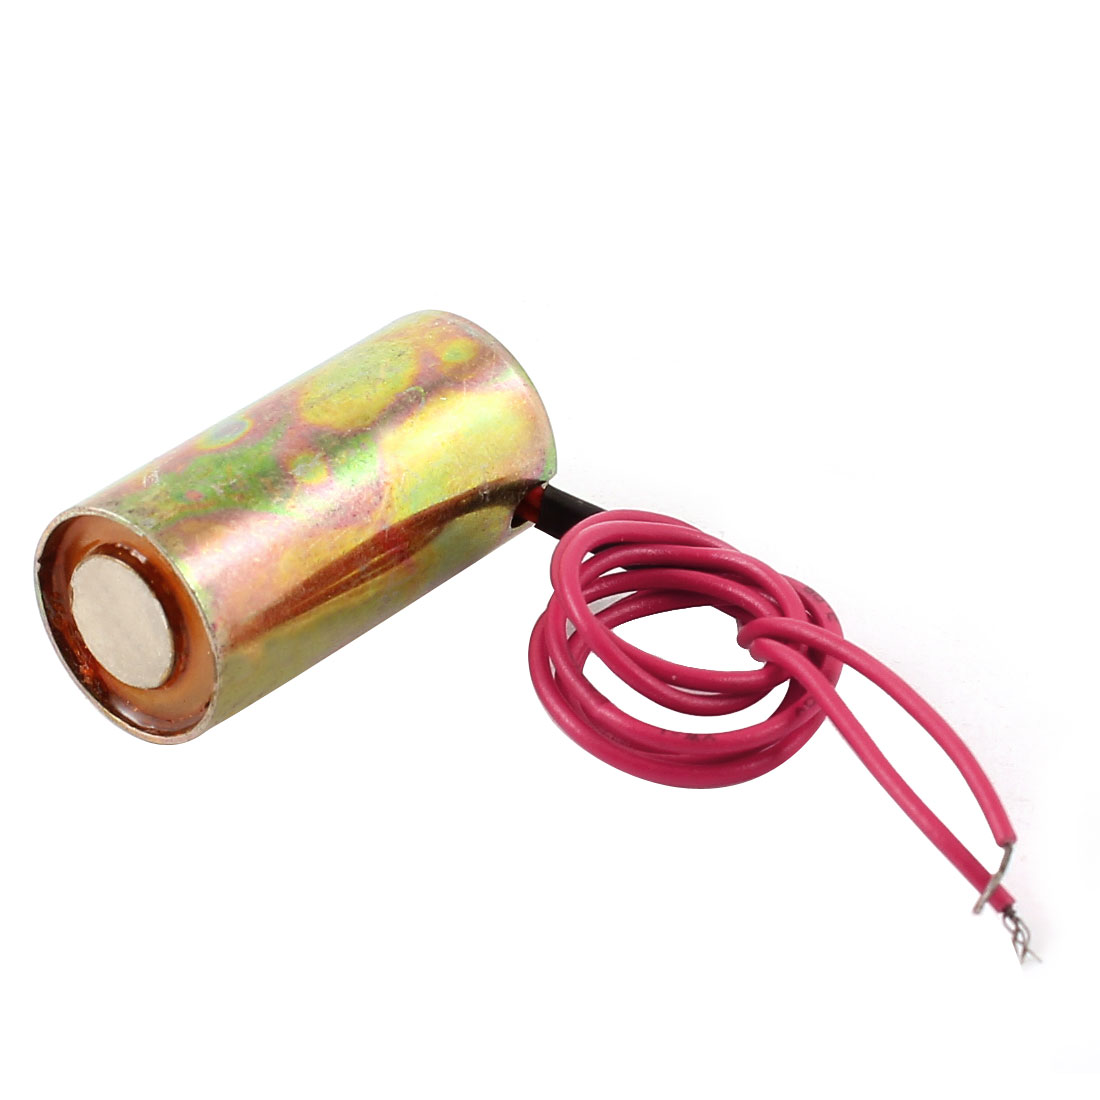 DC 6V 0.17A 1.02W 0mm 3g Lift Holding Electric Solenoid Electromagnet 32 x 16mm